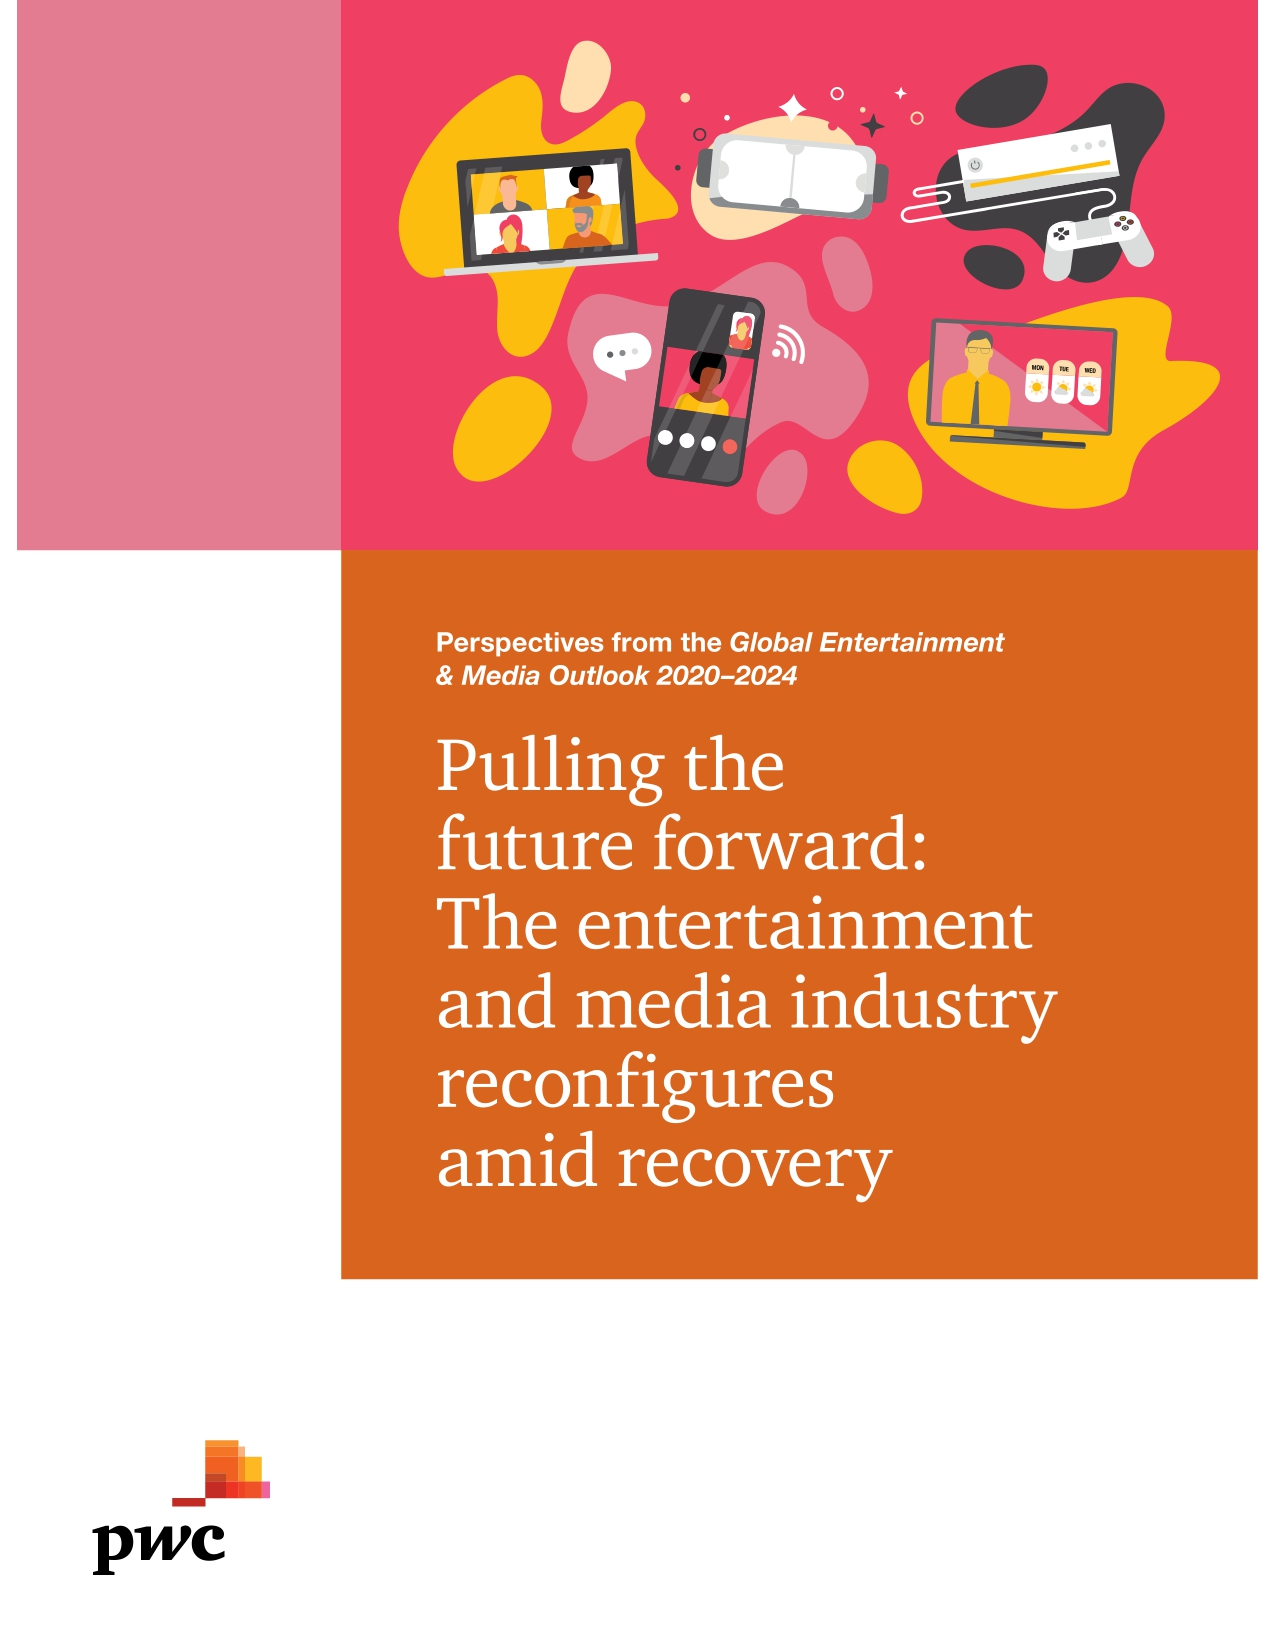 The entertainment and media industry reconfigures amid recovery